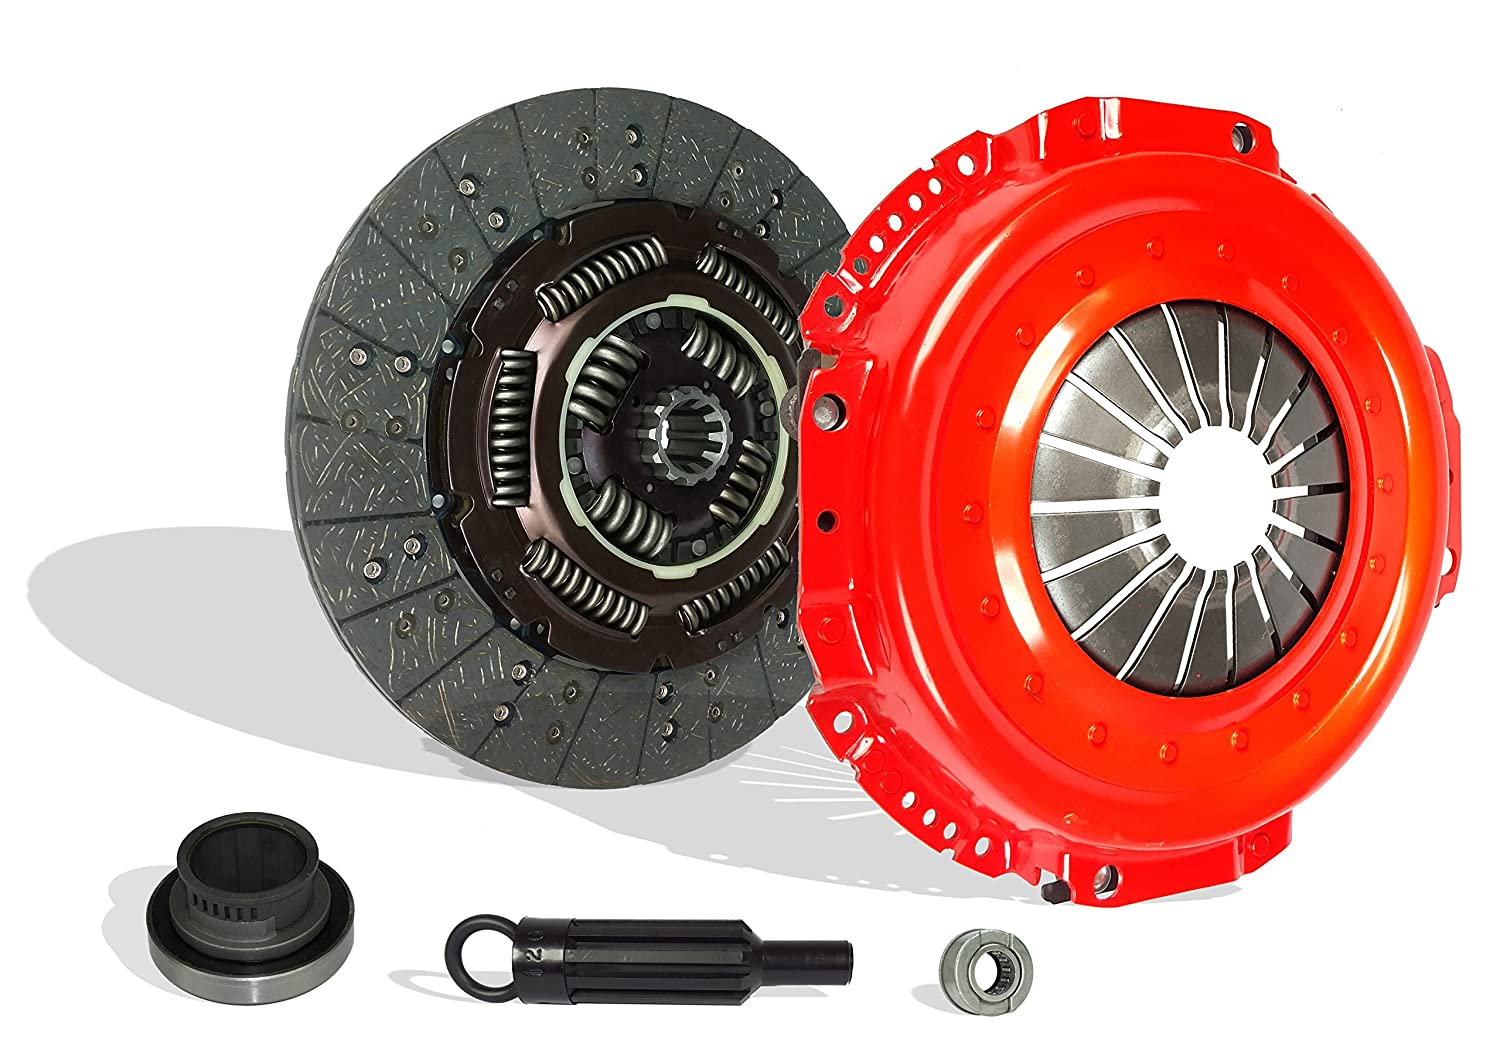 Embrague Kit etapa 1 para Ford S SD F250 F350 F59 sólo Solid Volante: Amazon.es: Coche y moto